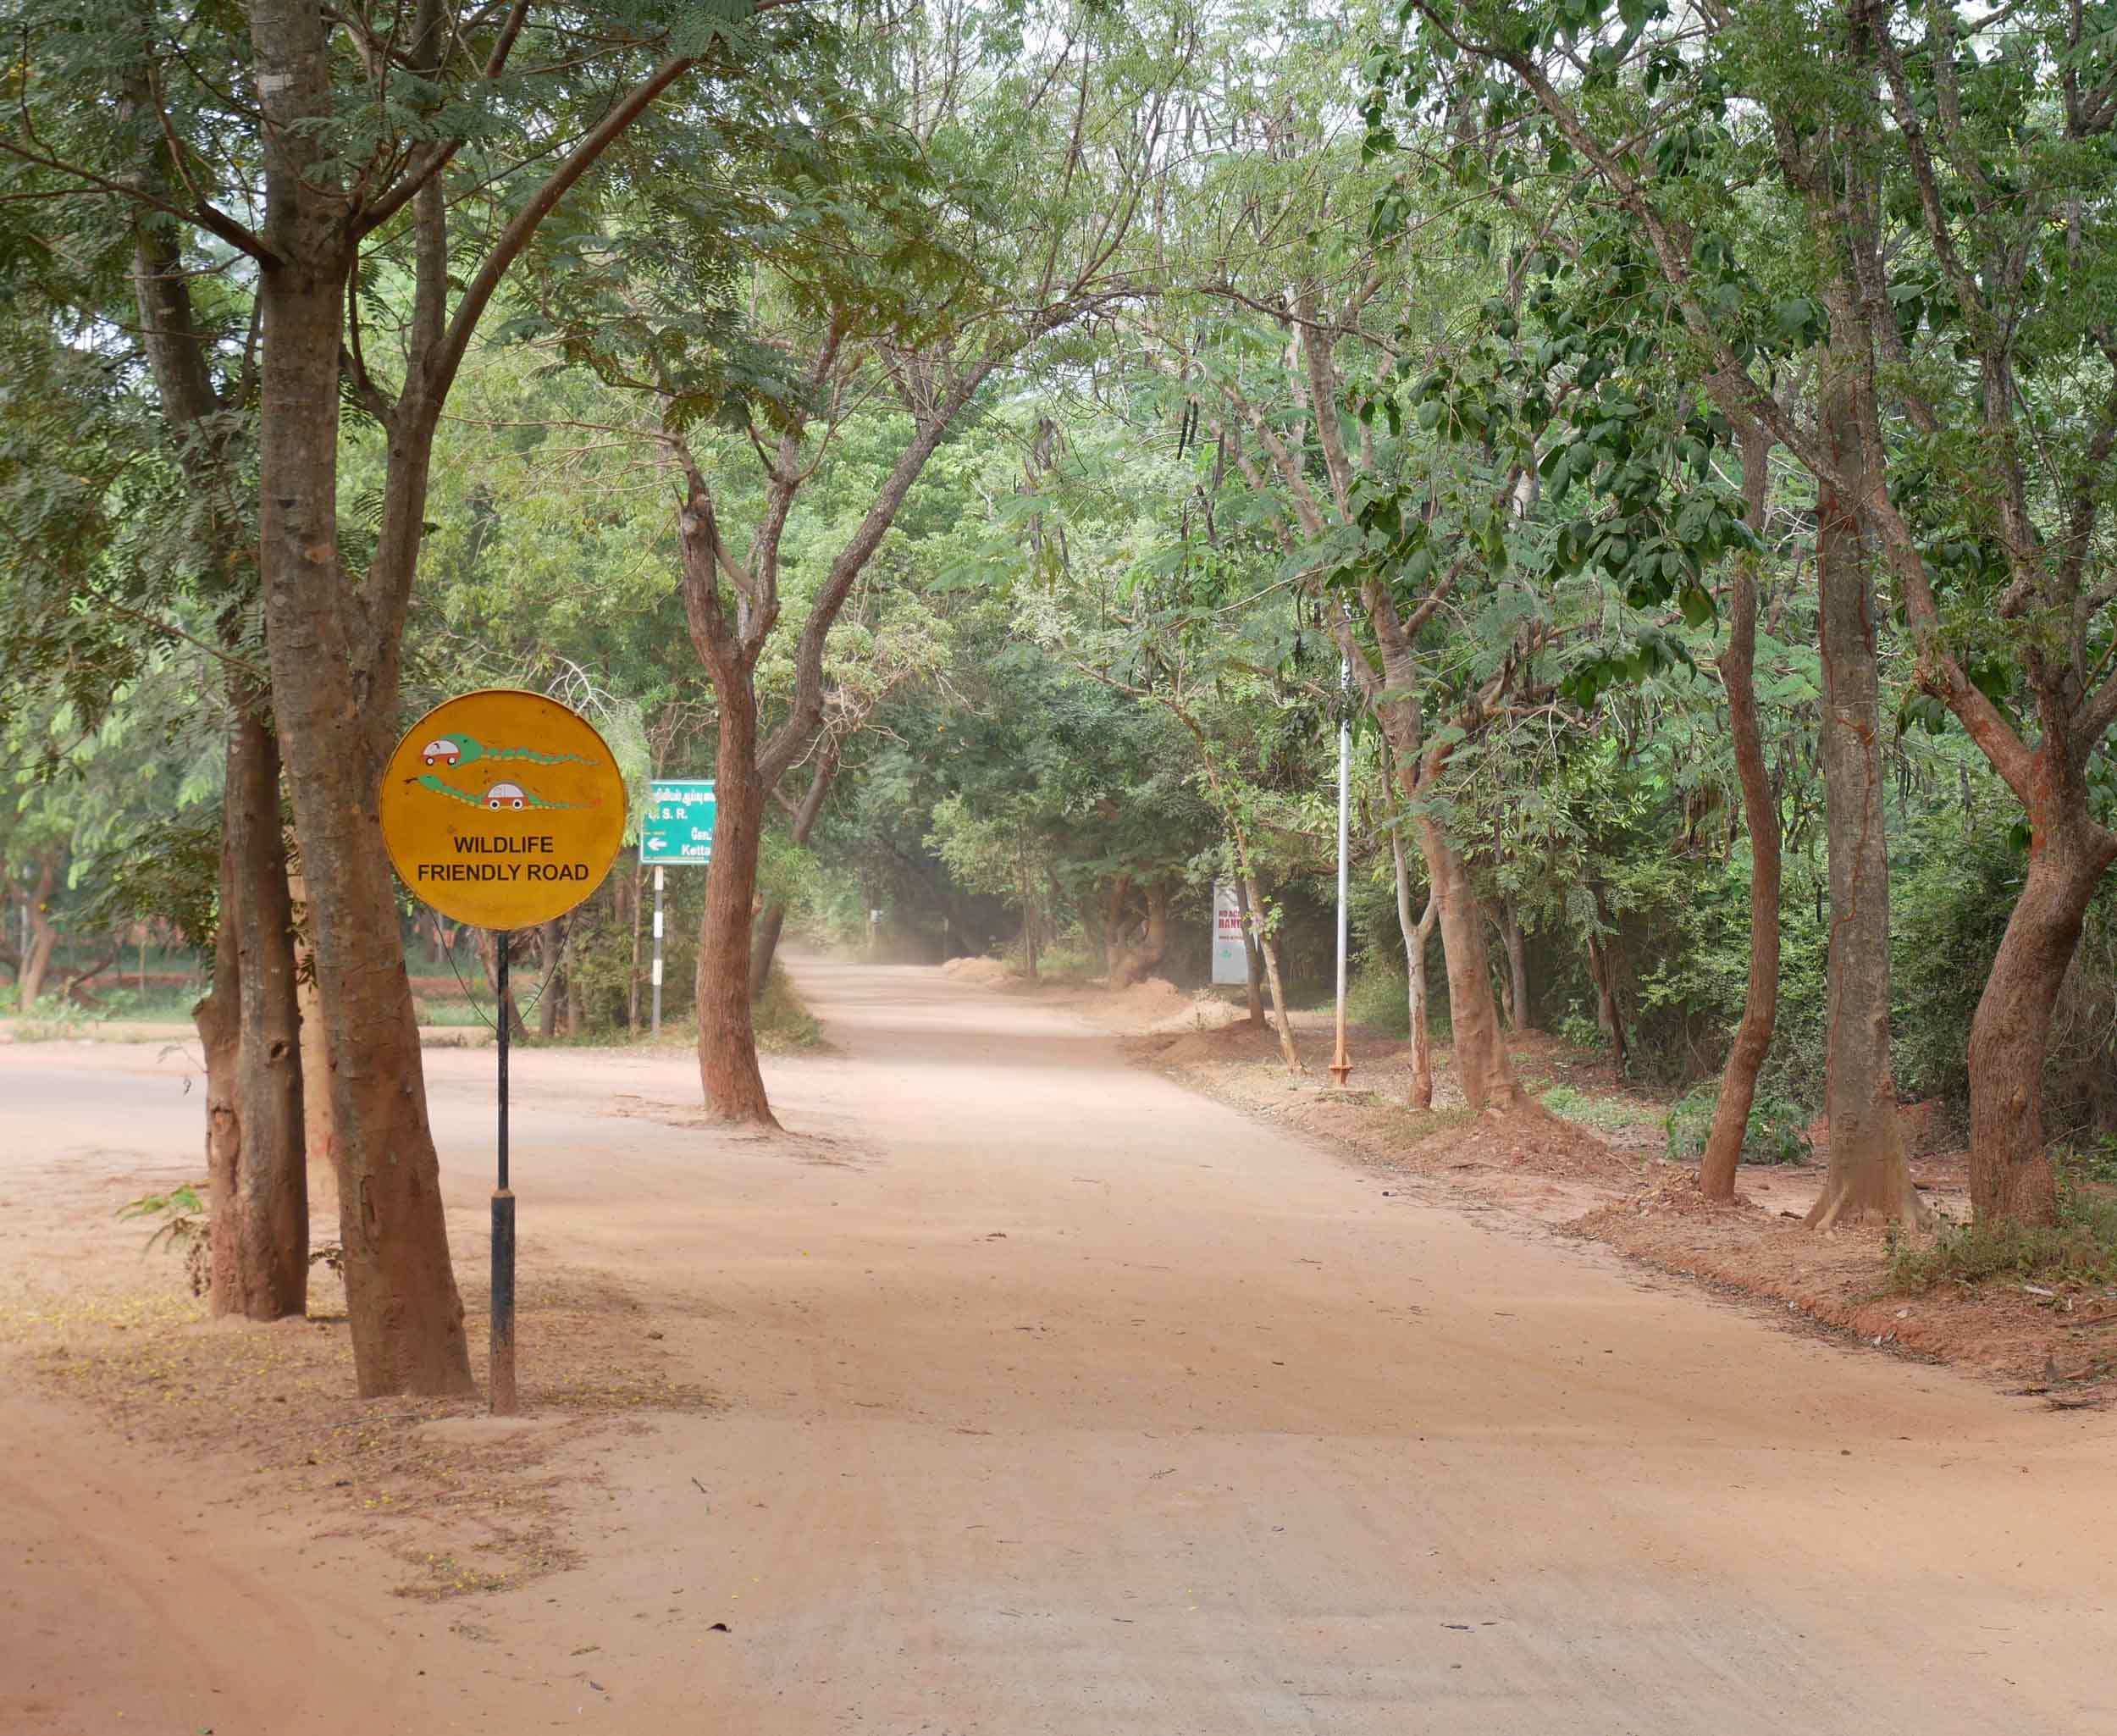 With rented motorbikes, we were free to explore the dusty roads of Auroville.